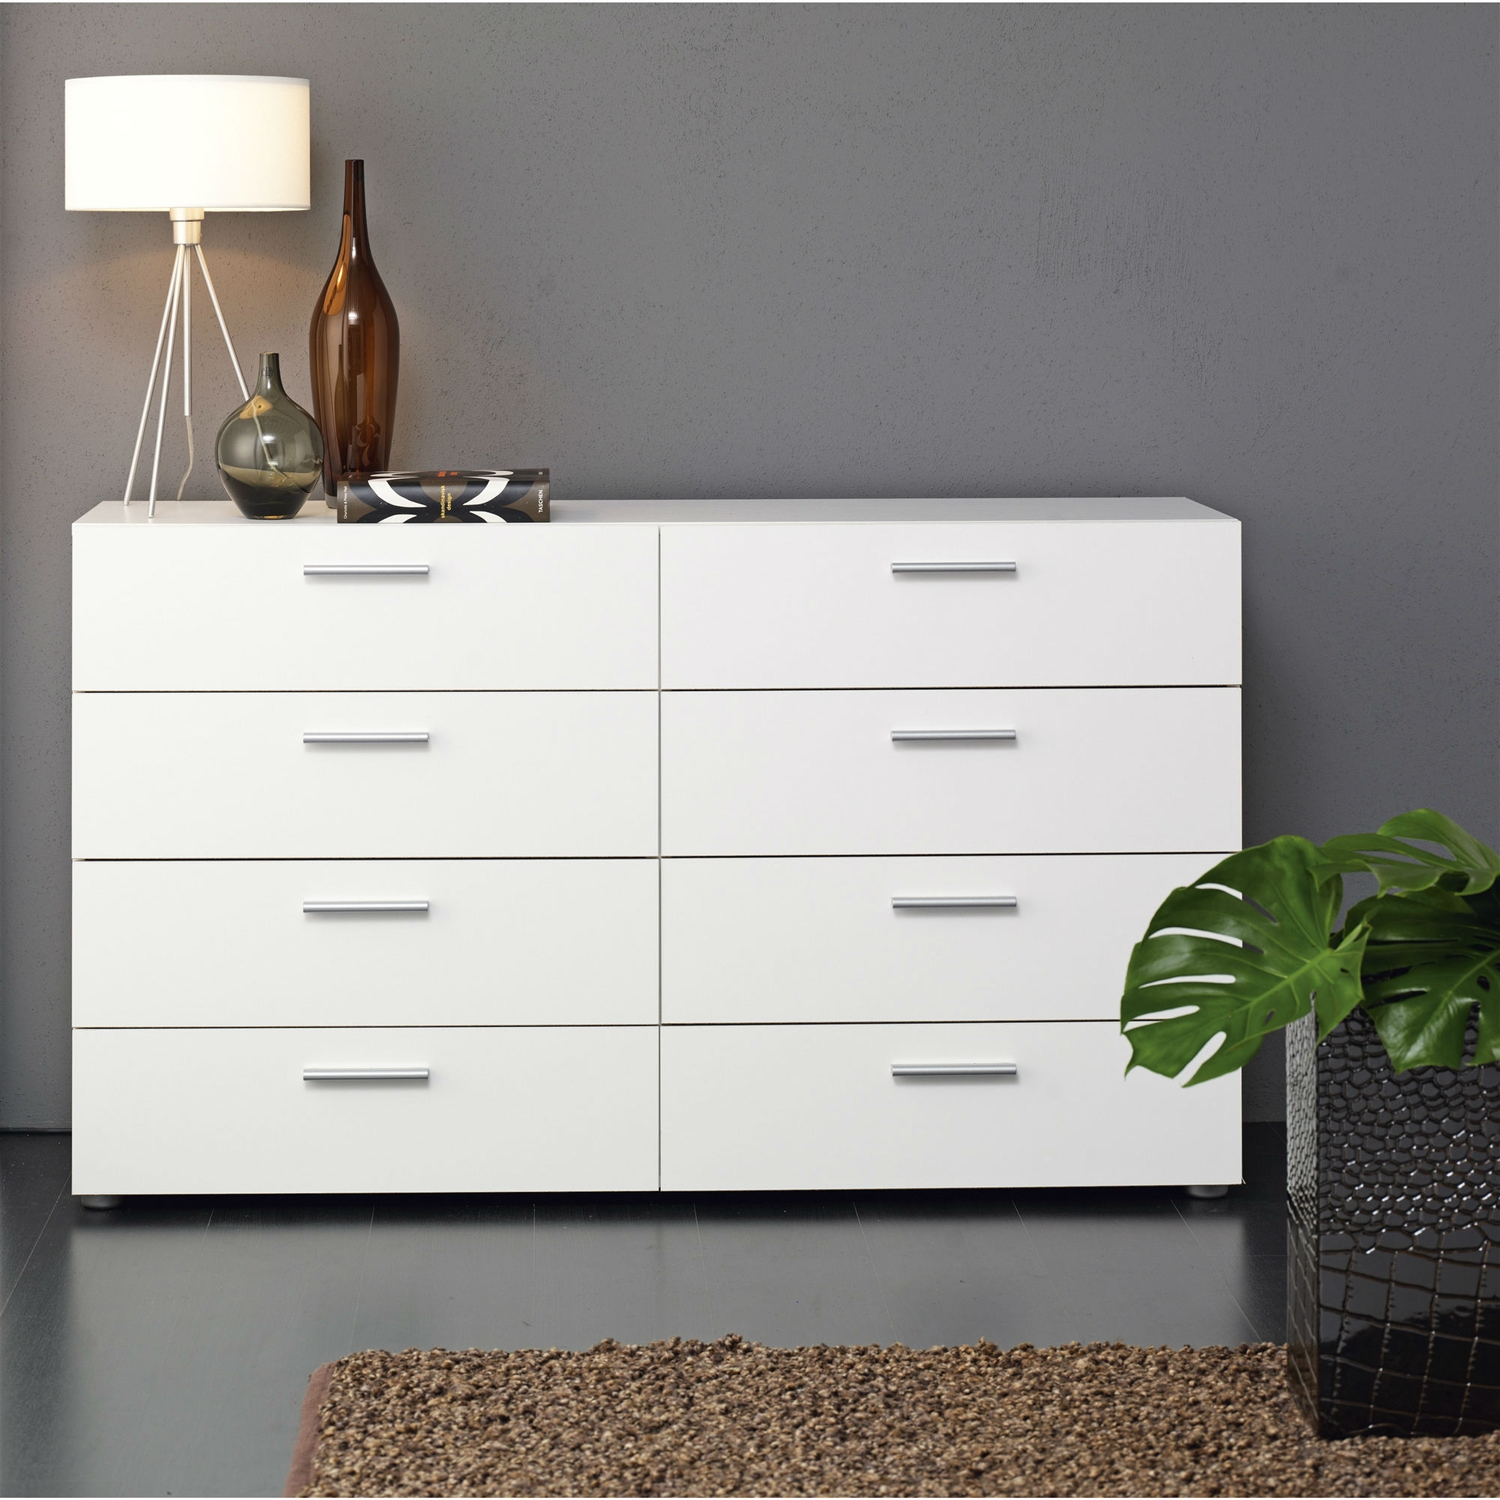 White Modern Bedroom 8 Drawer Double Dresser with regard to 15 Some of the Coolest Ideas How to Make Modern Bedroom Dressers